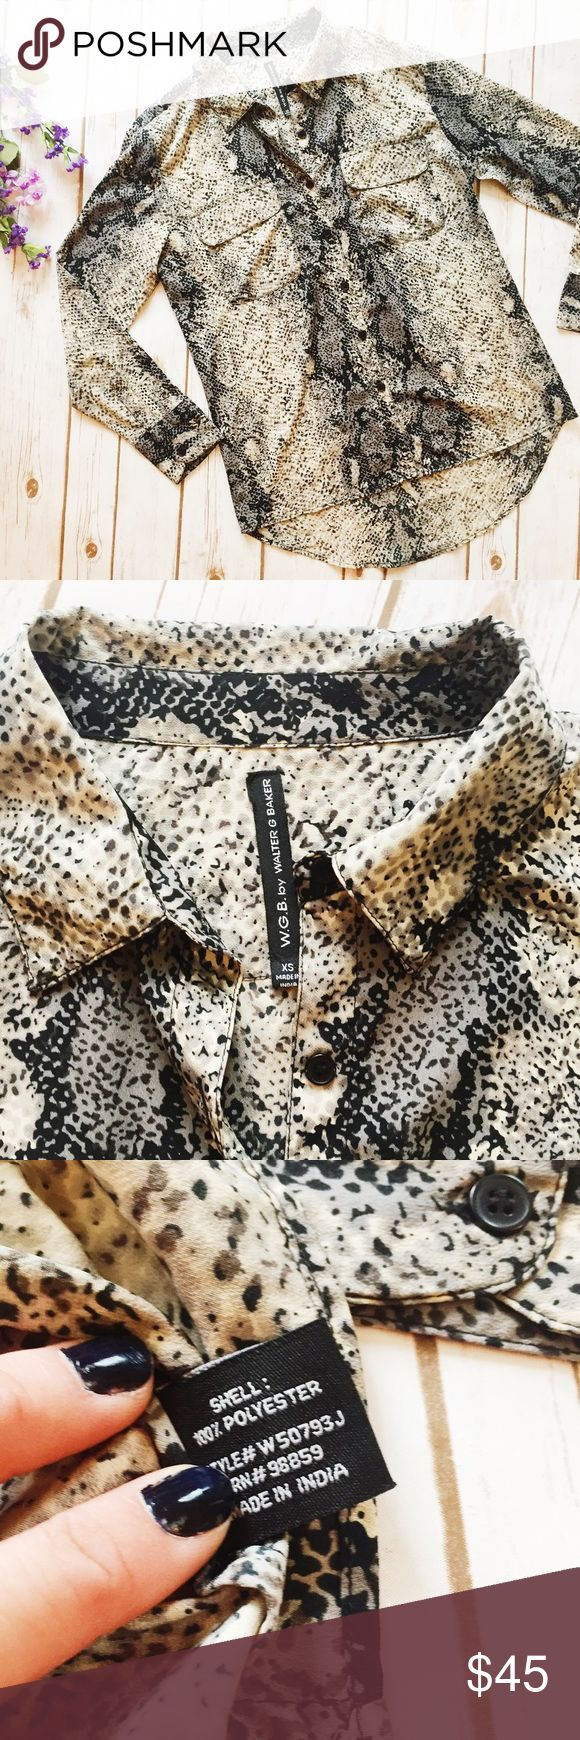 WGB By Walter Baker || Snake Print Button Down ★ Excellent Condition   ★ Reasonable Offers Accepted  ★ Measurements Available upon Request  ★ NO TRADES ★ NO MODELING (22bhro) Walter Baker Tops Button Down Shirts